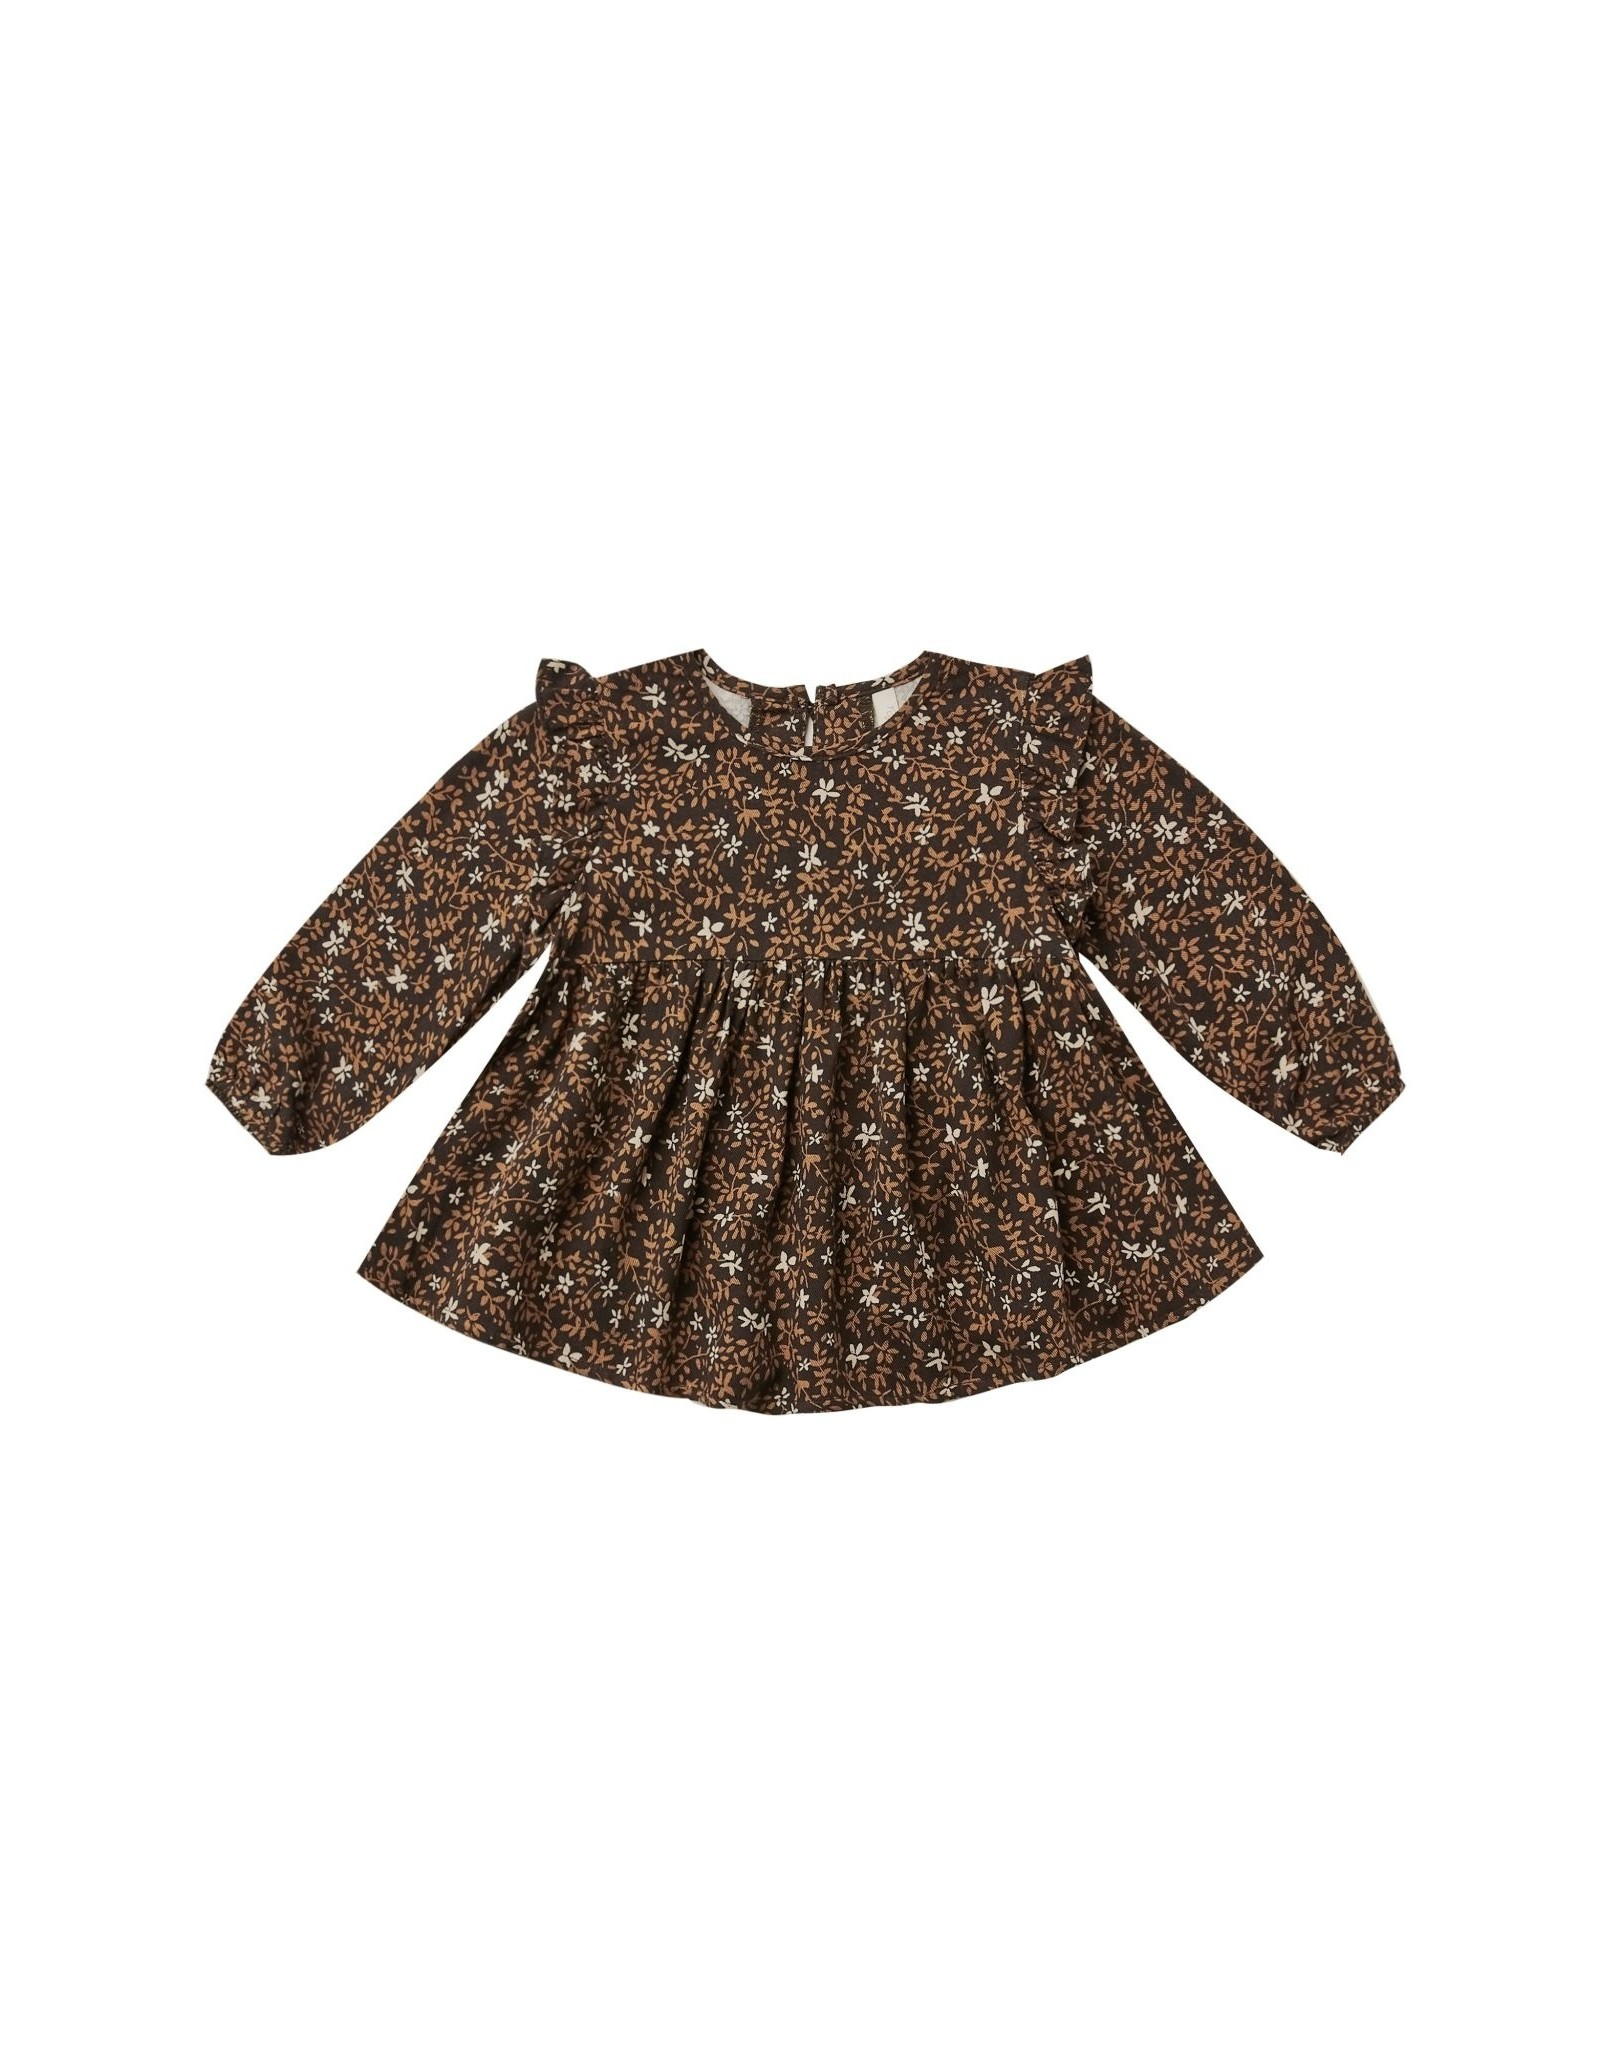 Rylee and Cru piper blouse- winter bloom